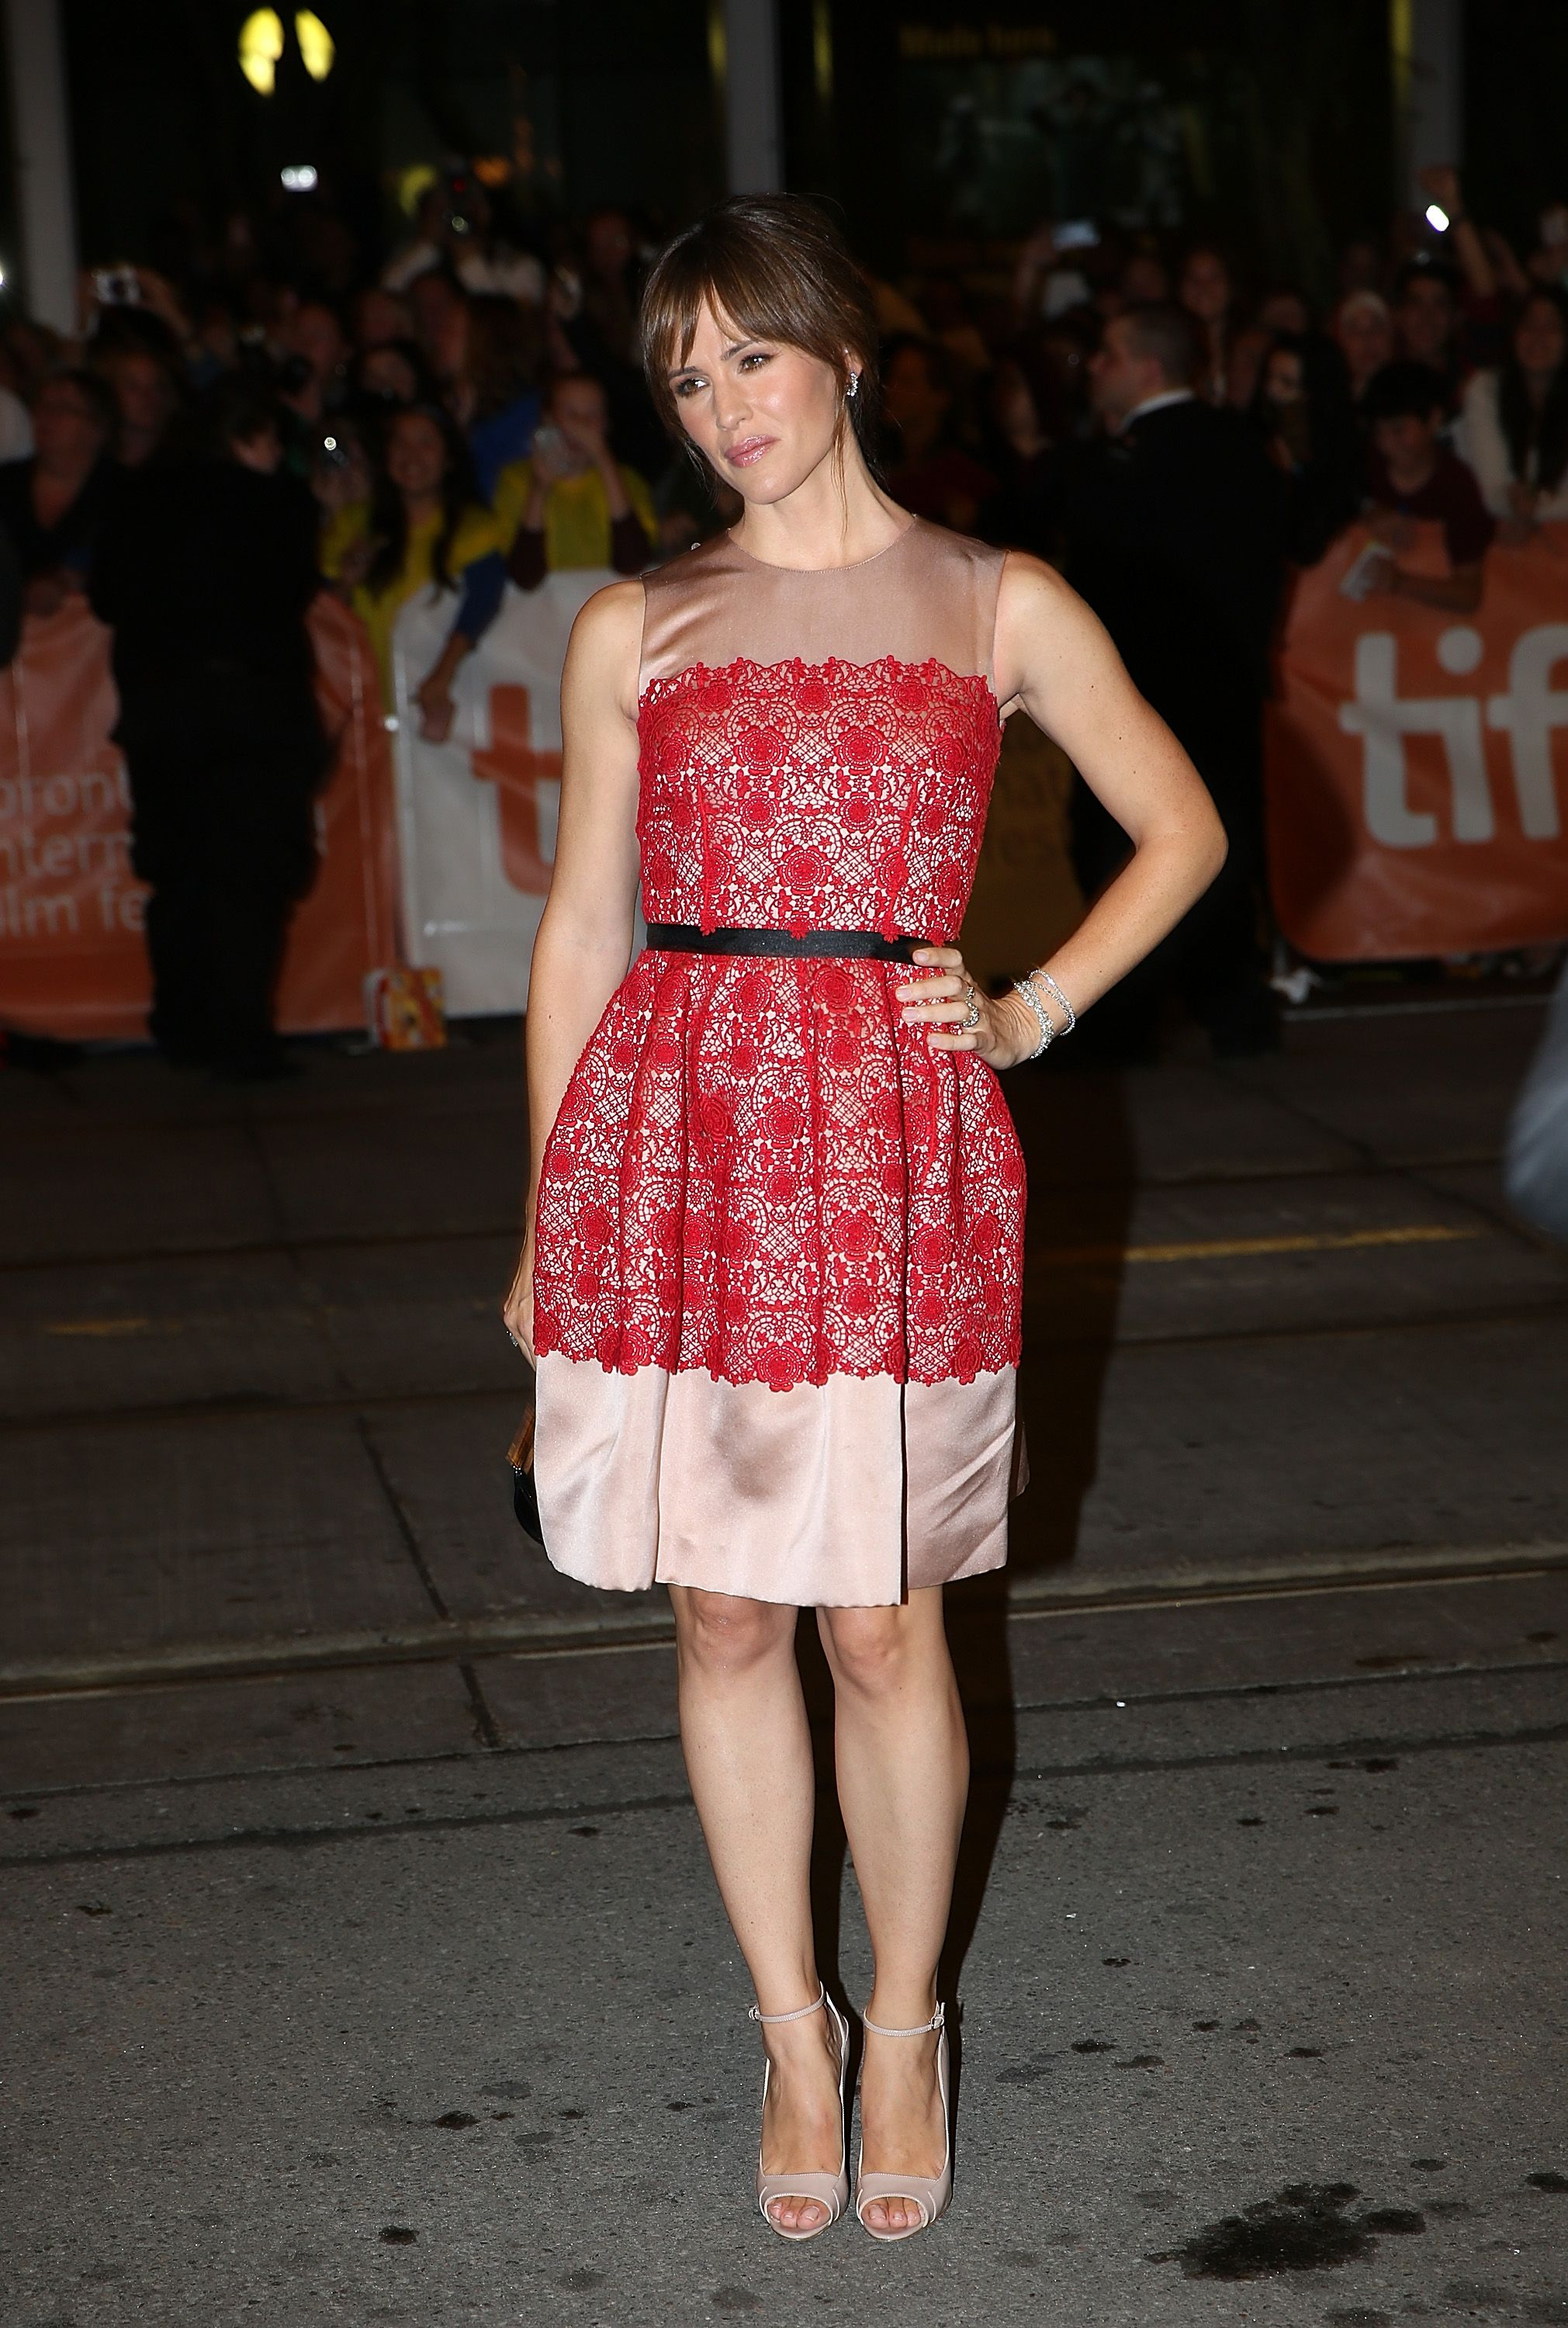 September 7, 2013 In a Dolce & Gabbana dress and Brian Atwood heels at the Dallas Buyers Club premiere during the 2013 Toronto International Film Festival in Toronto, Canada.